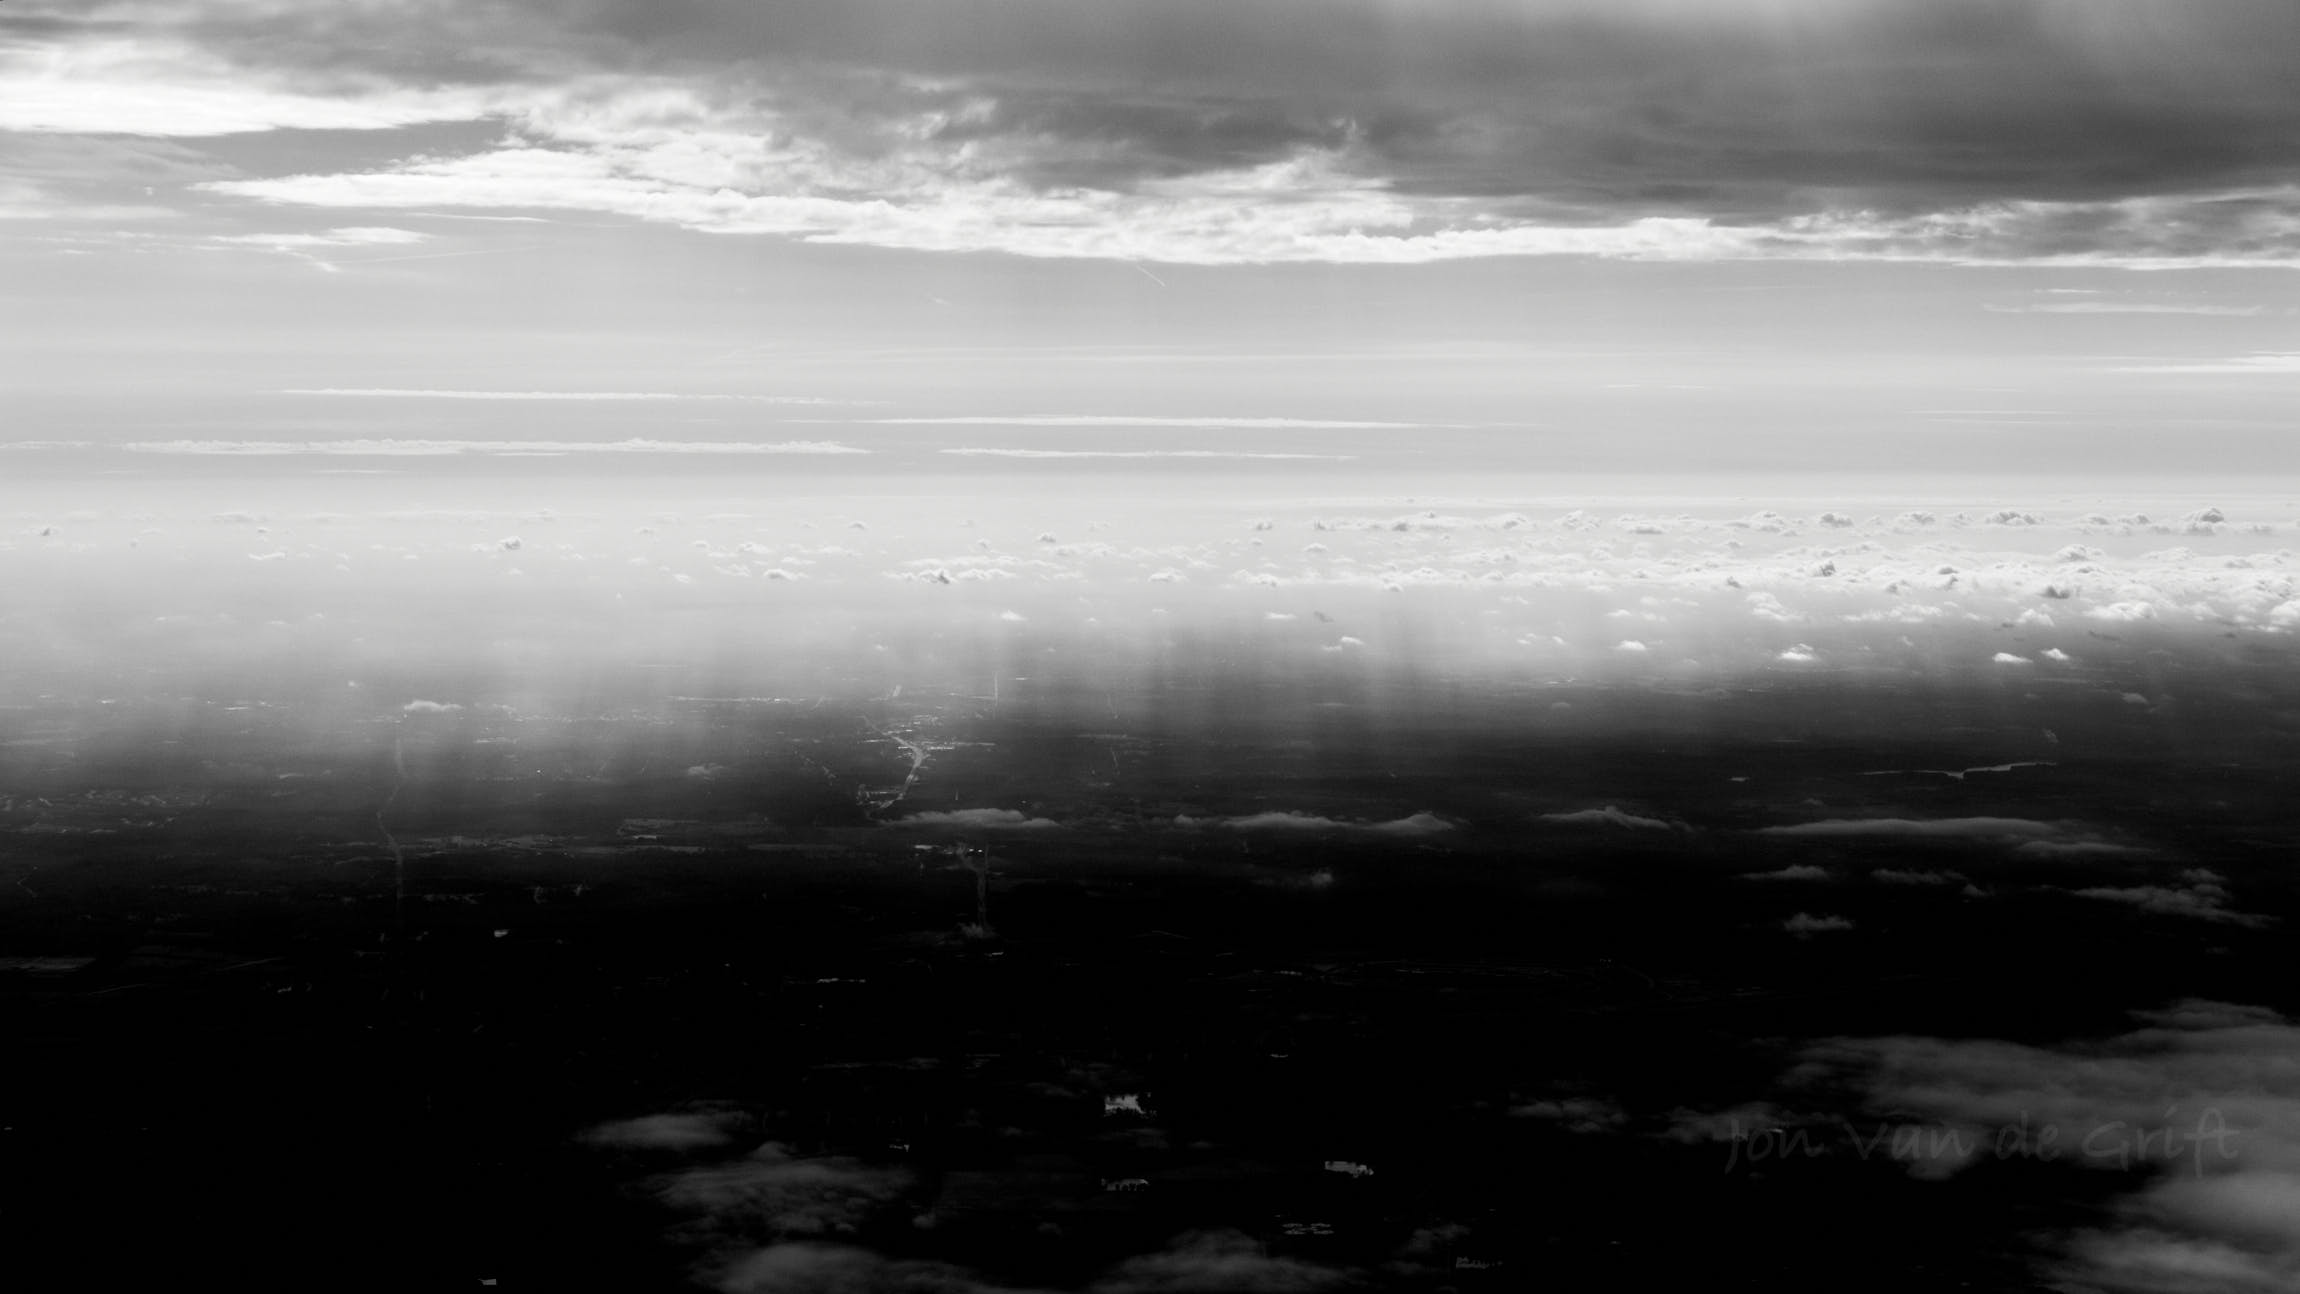 Black and white aerial photograph captured flying between cloud layers.